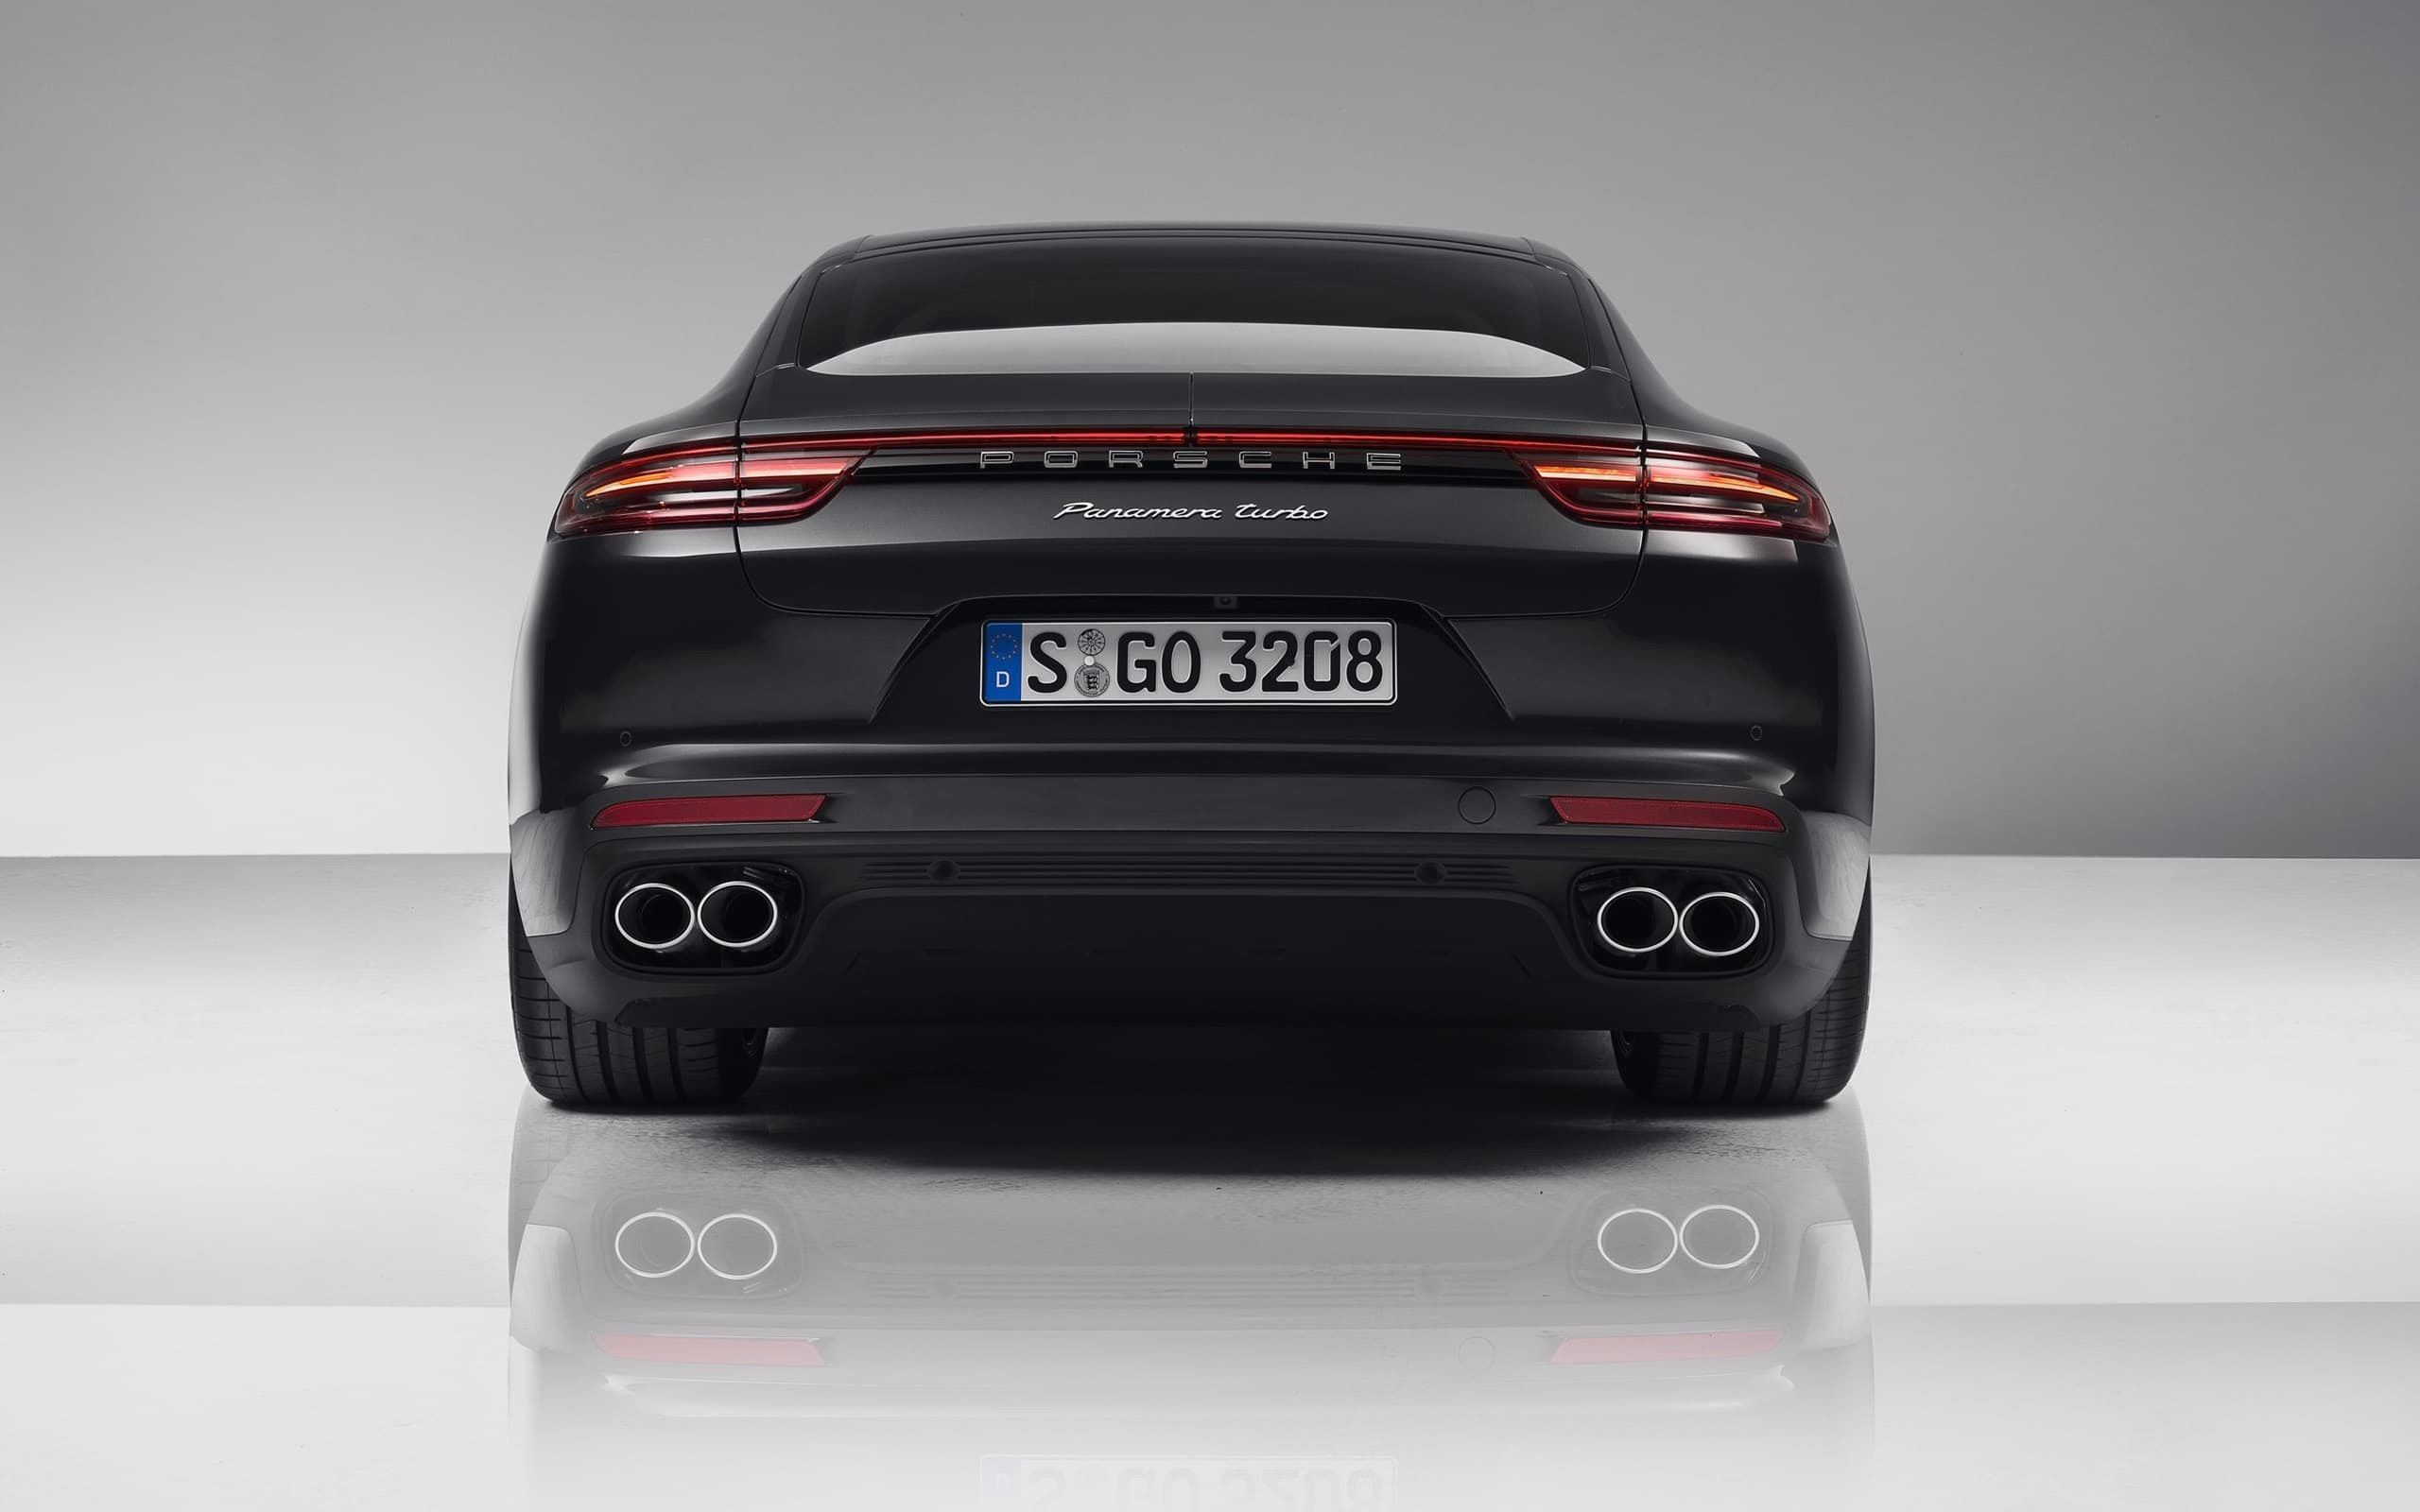 2017 porsche panamera turbo s 2017 2018 best car reviews 2017 2018 - 2017 Porsche Panamera Turbo S Wing One Of The Most Exciting New Features Of The 2017